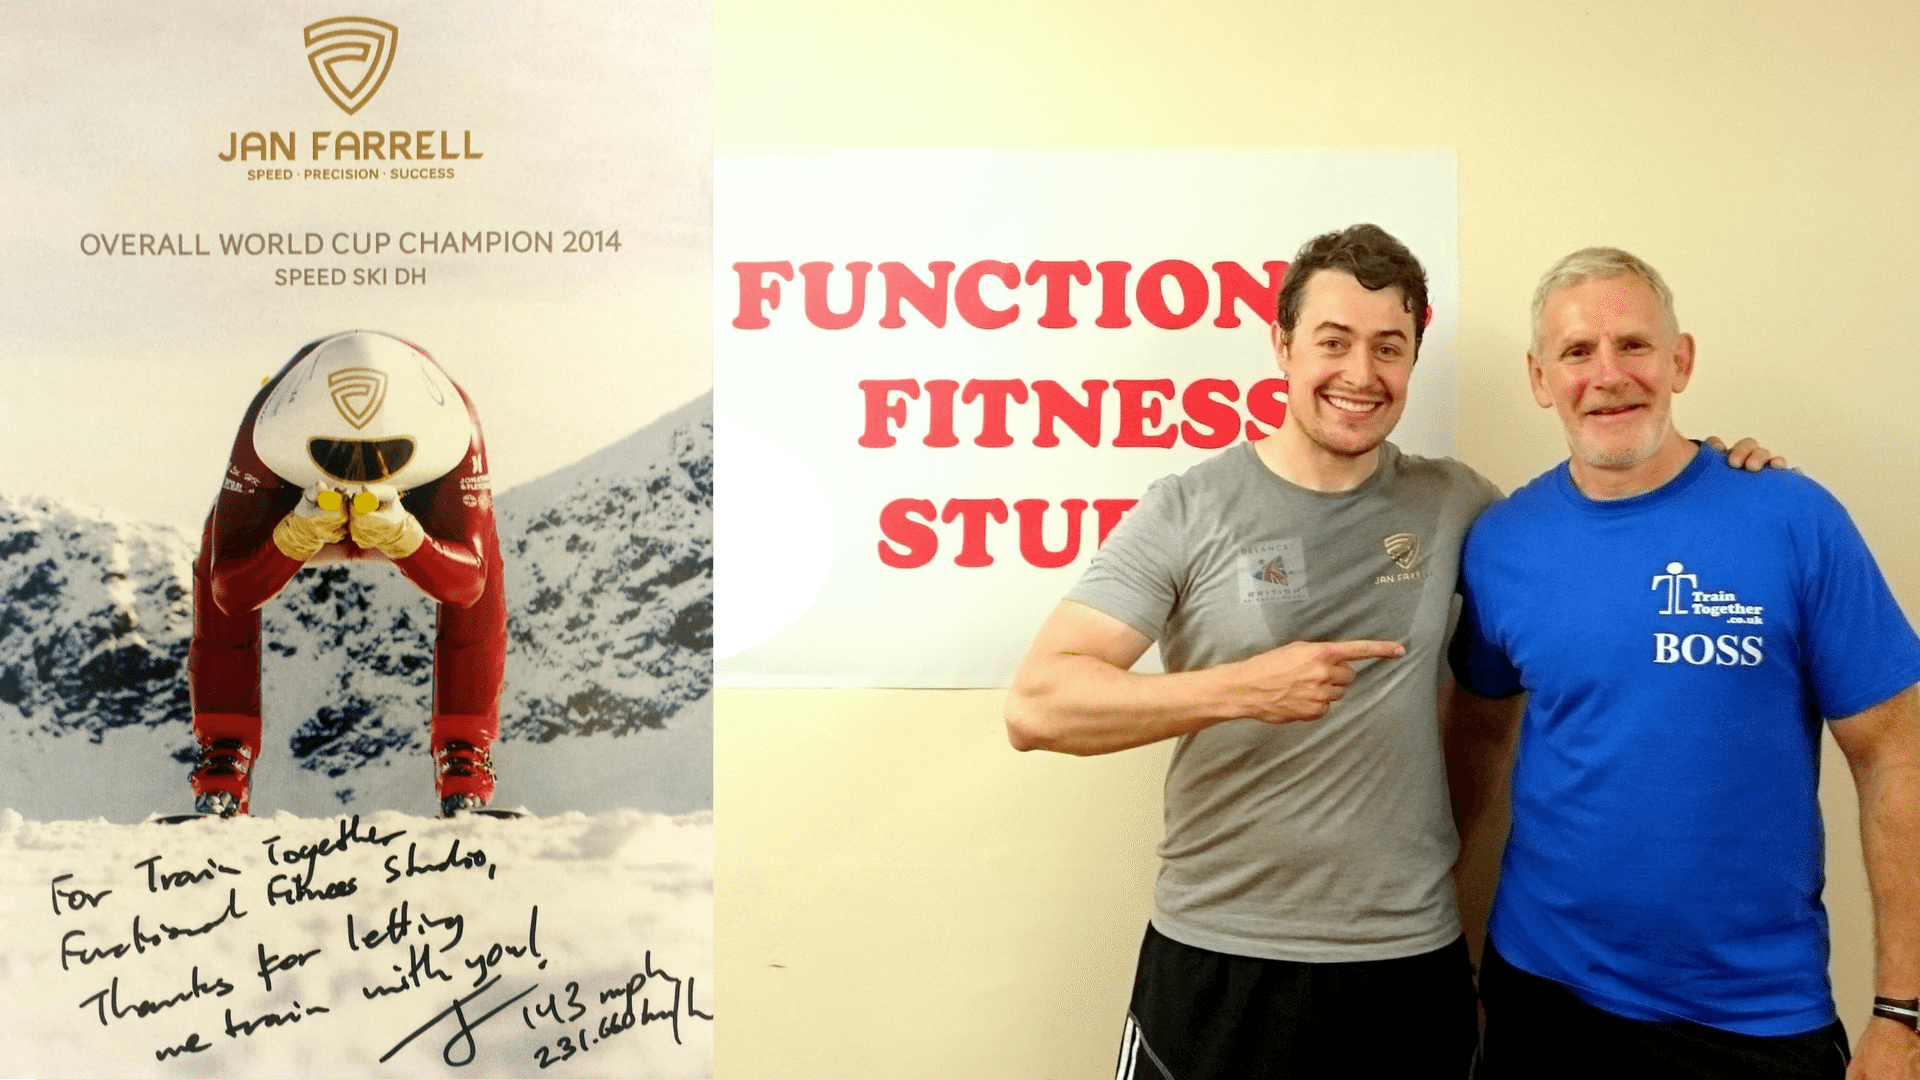 Jan Farrell, Speed Skiing Champion, Joins Train Together!